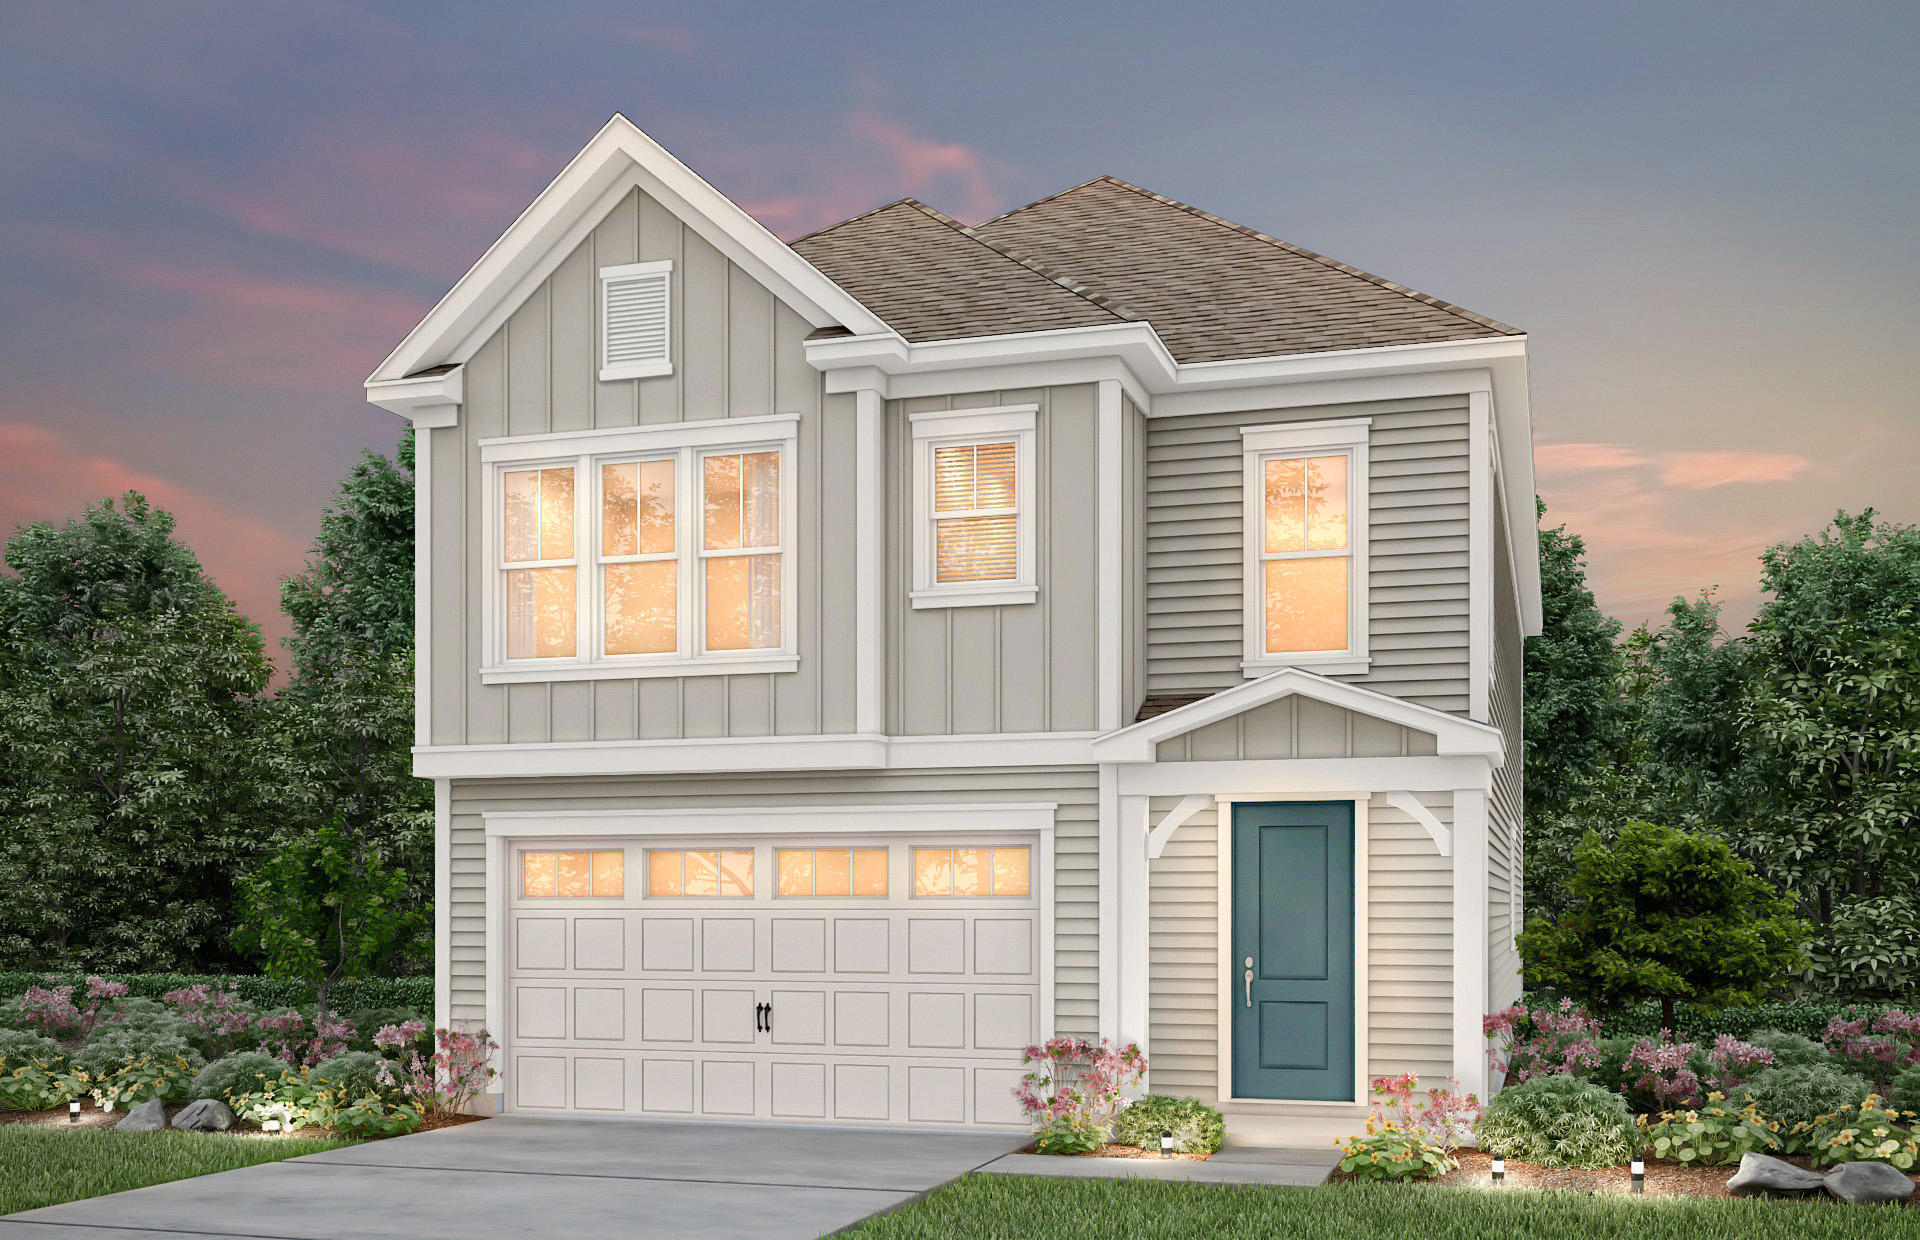 Pointe at Primus Homes For Sale - 1228 Caisa Caisa, Mount Pleasant, SC - 0